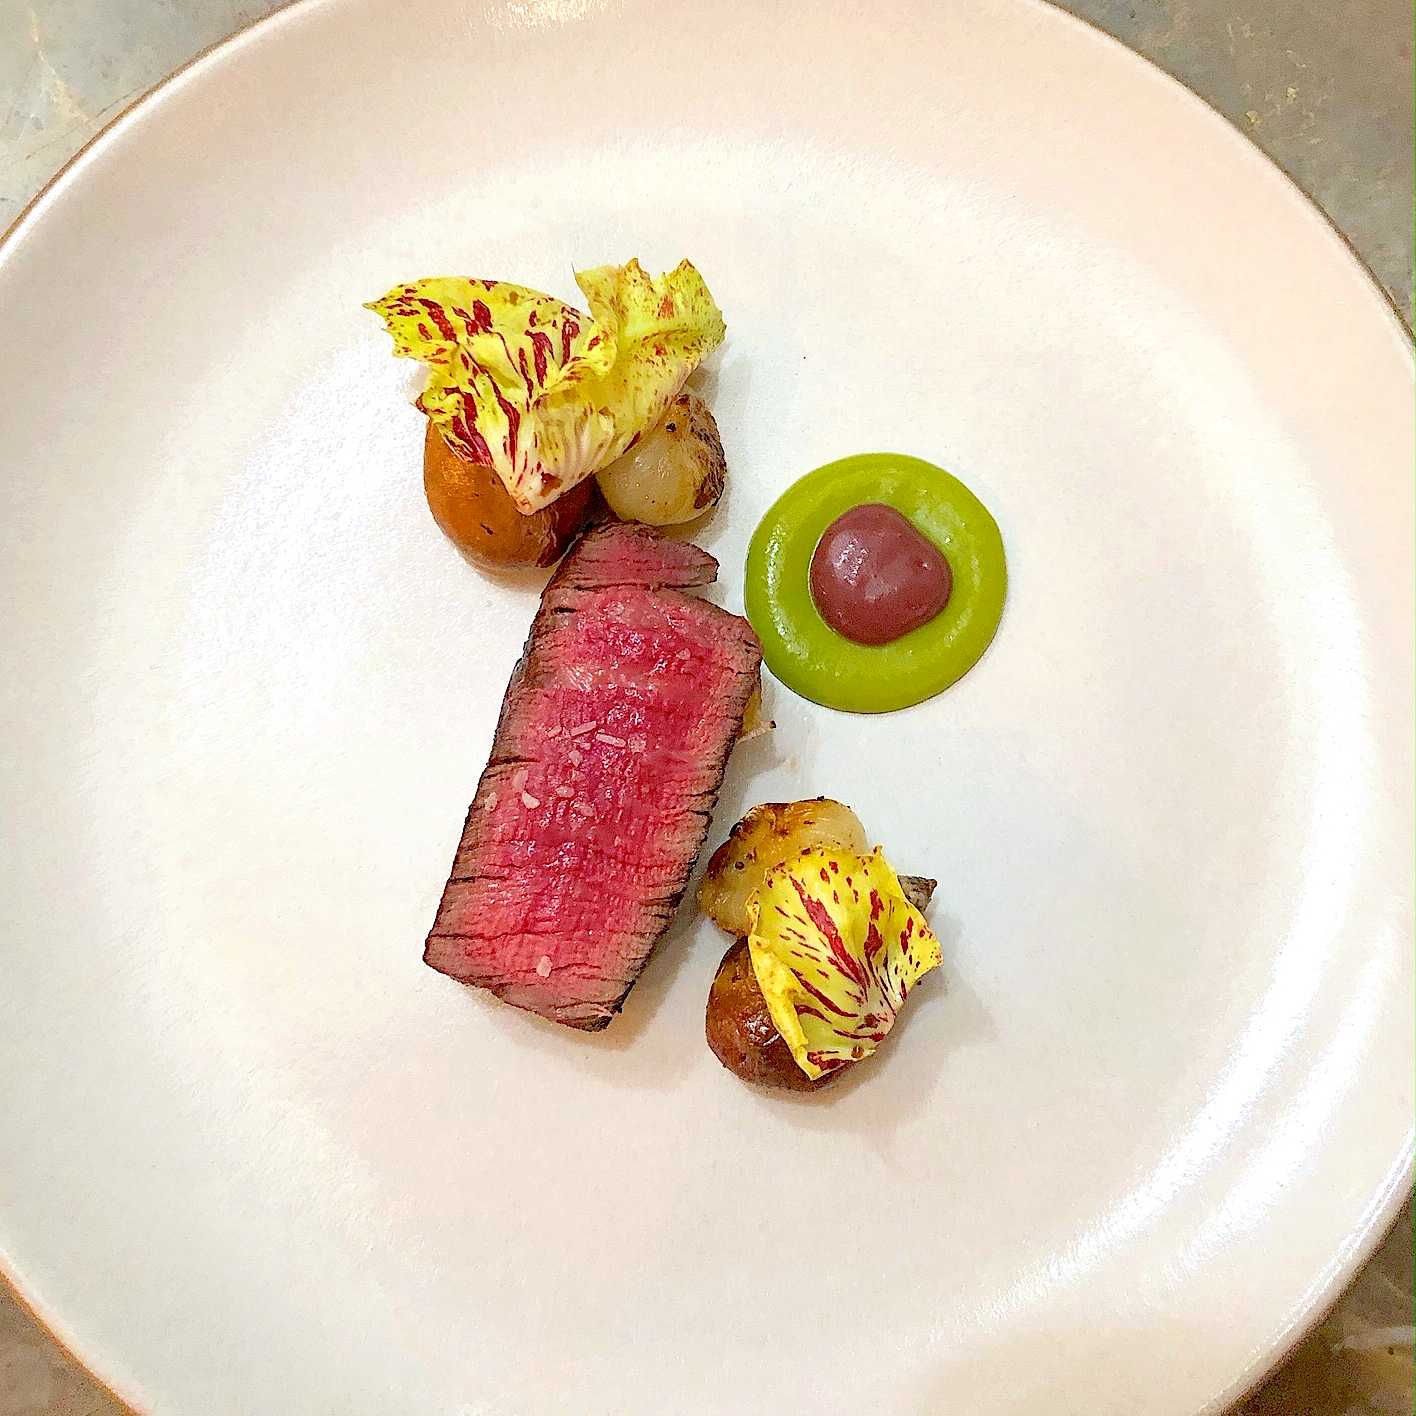 Beef tenderloin recipe with Olive and potato